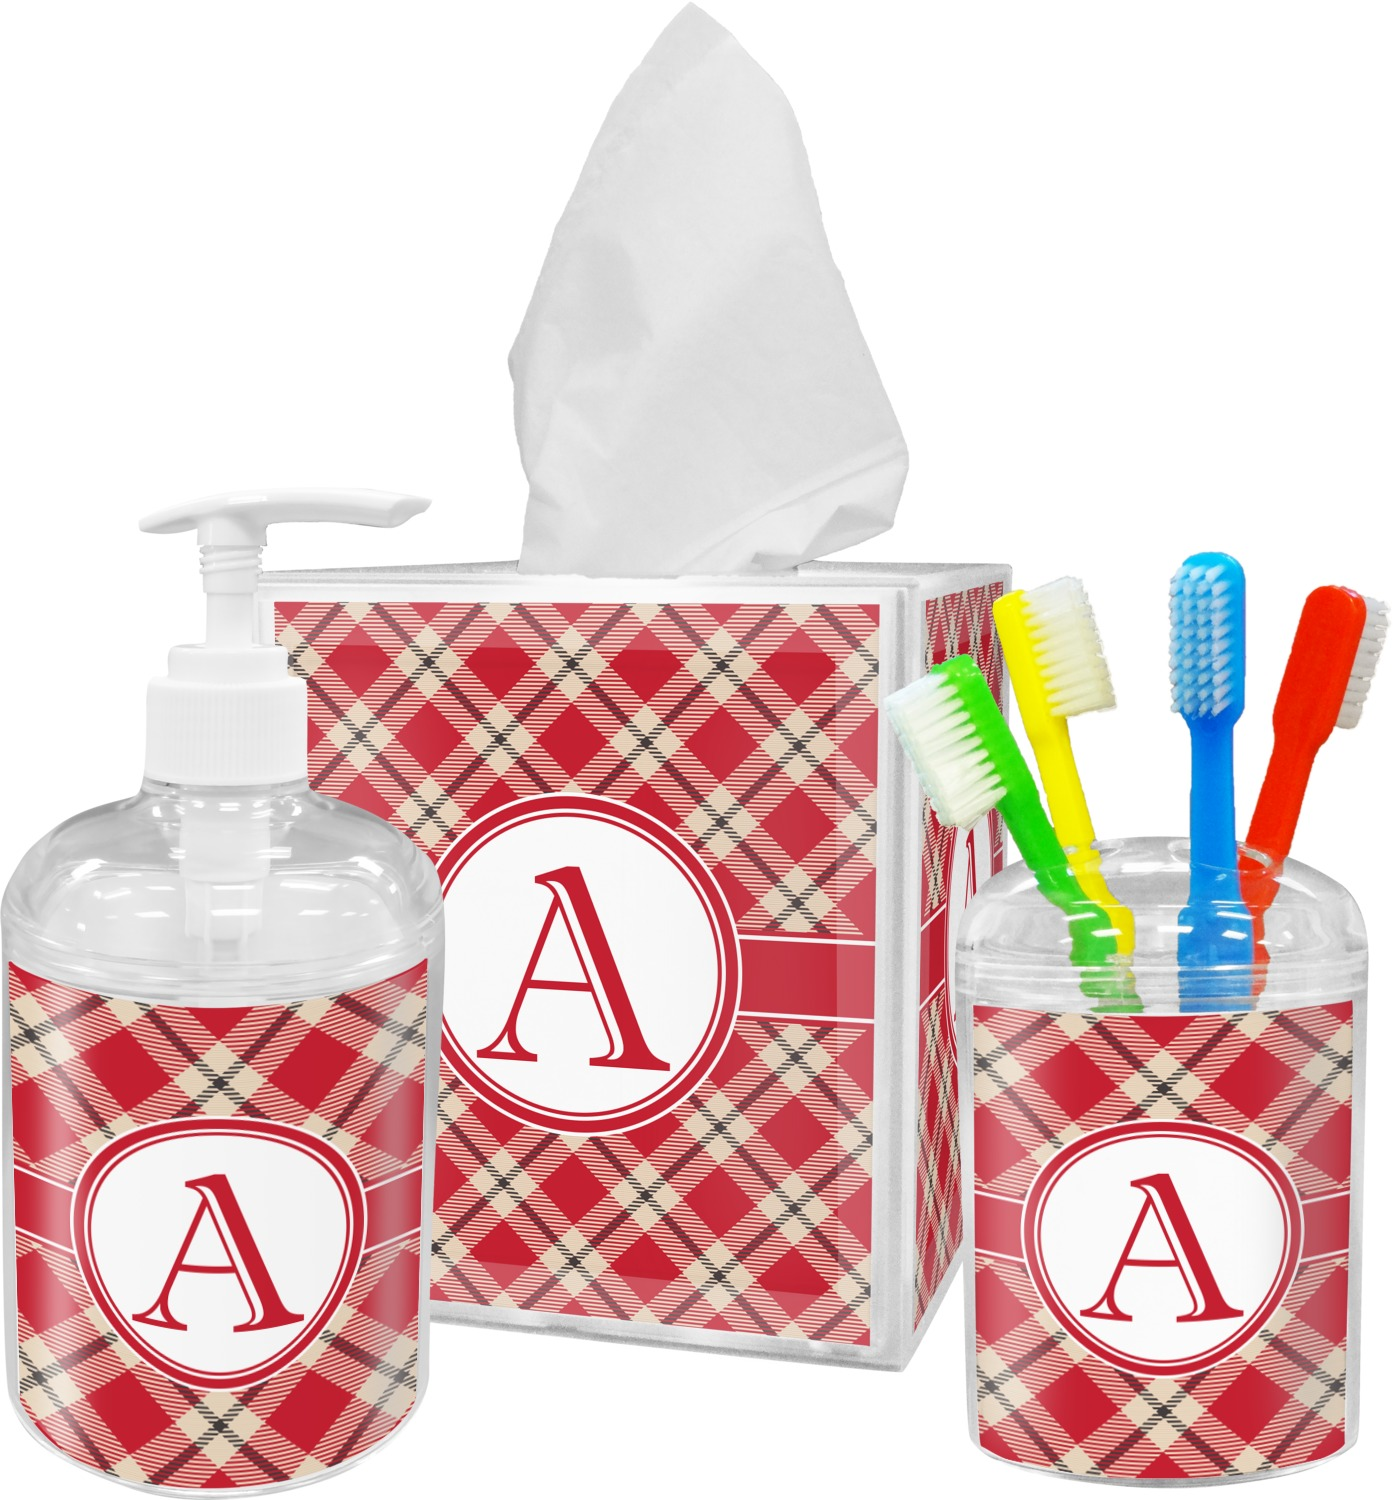 Red & Tan Plaid Bathroom Accessories Set (Personalized) - YouCustomizeIt